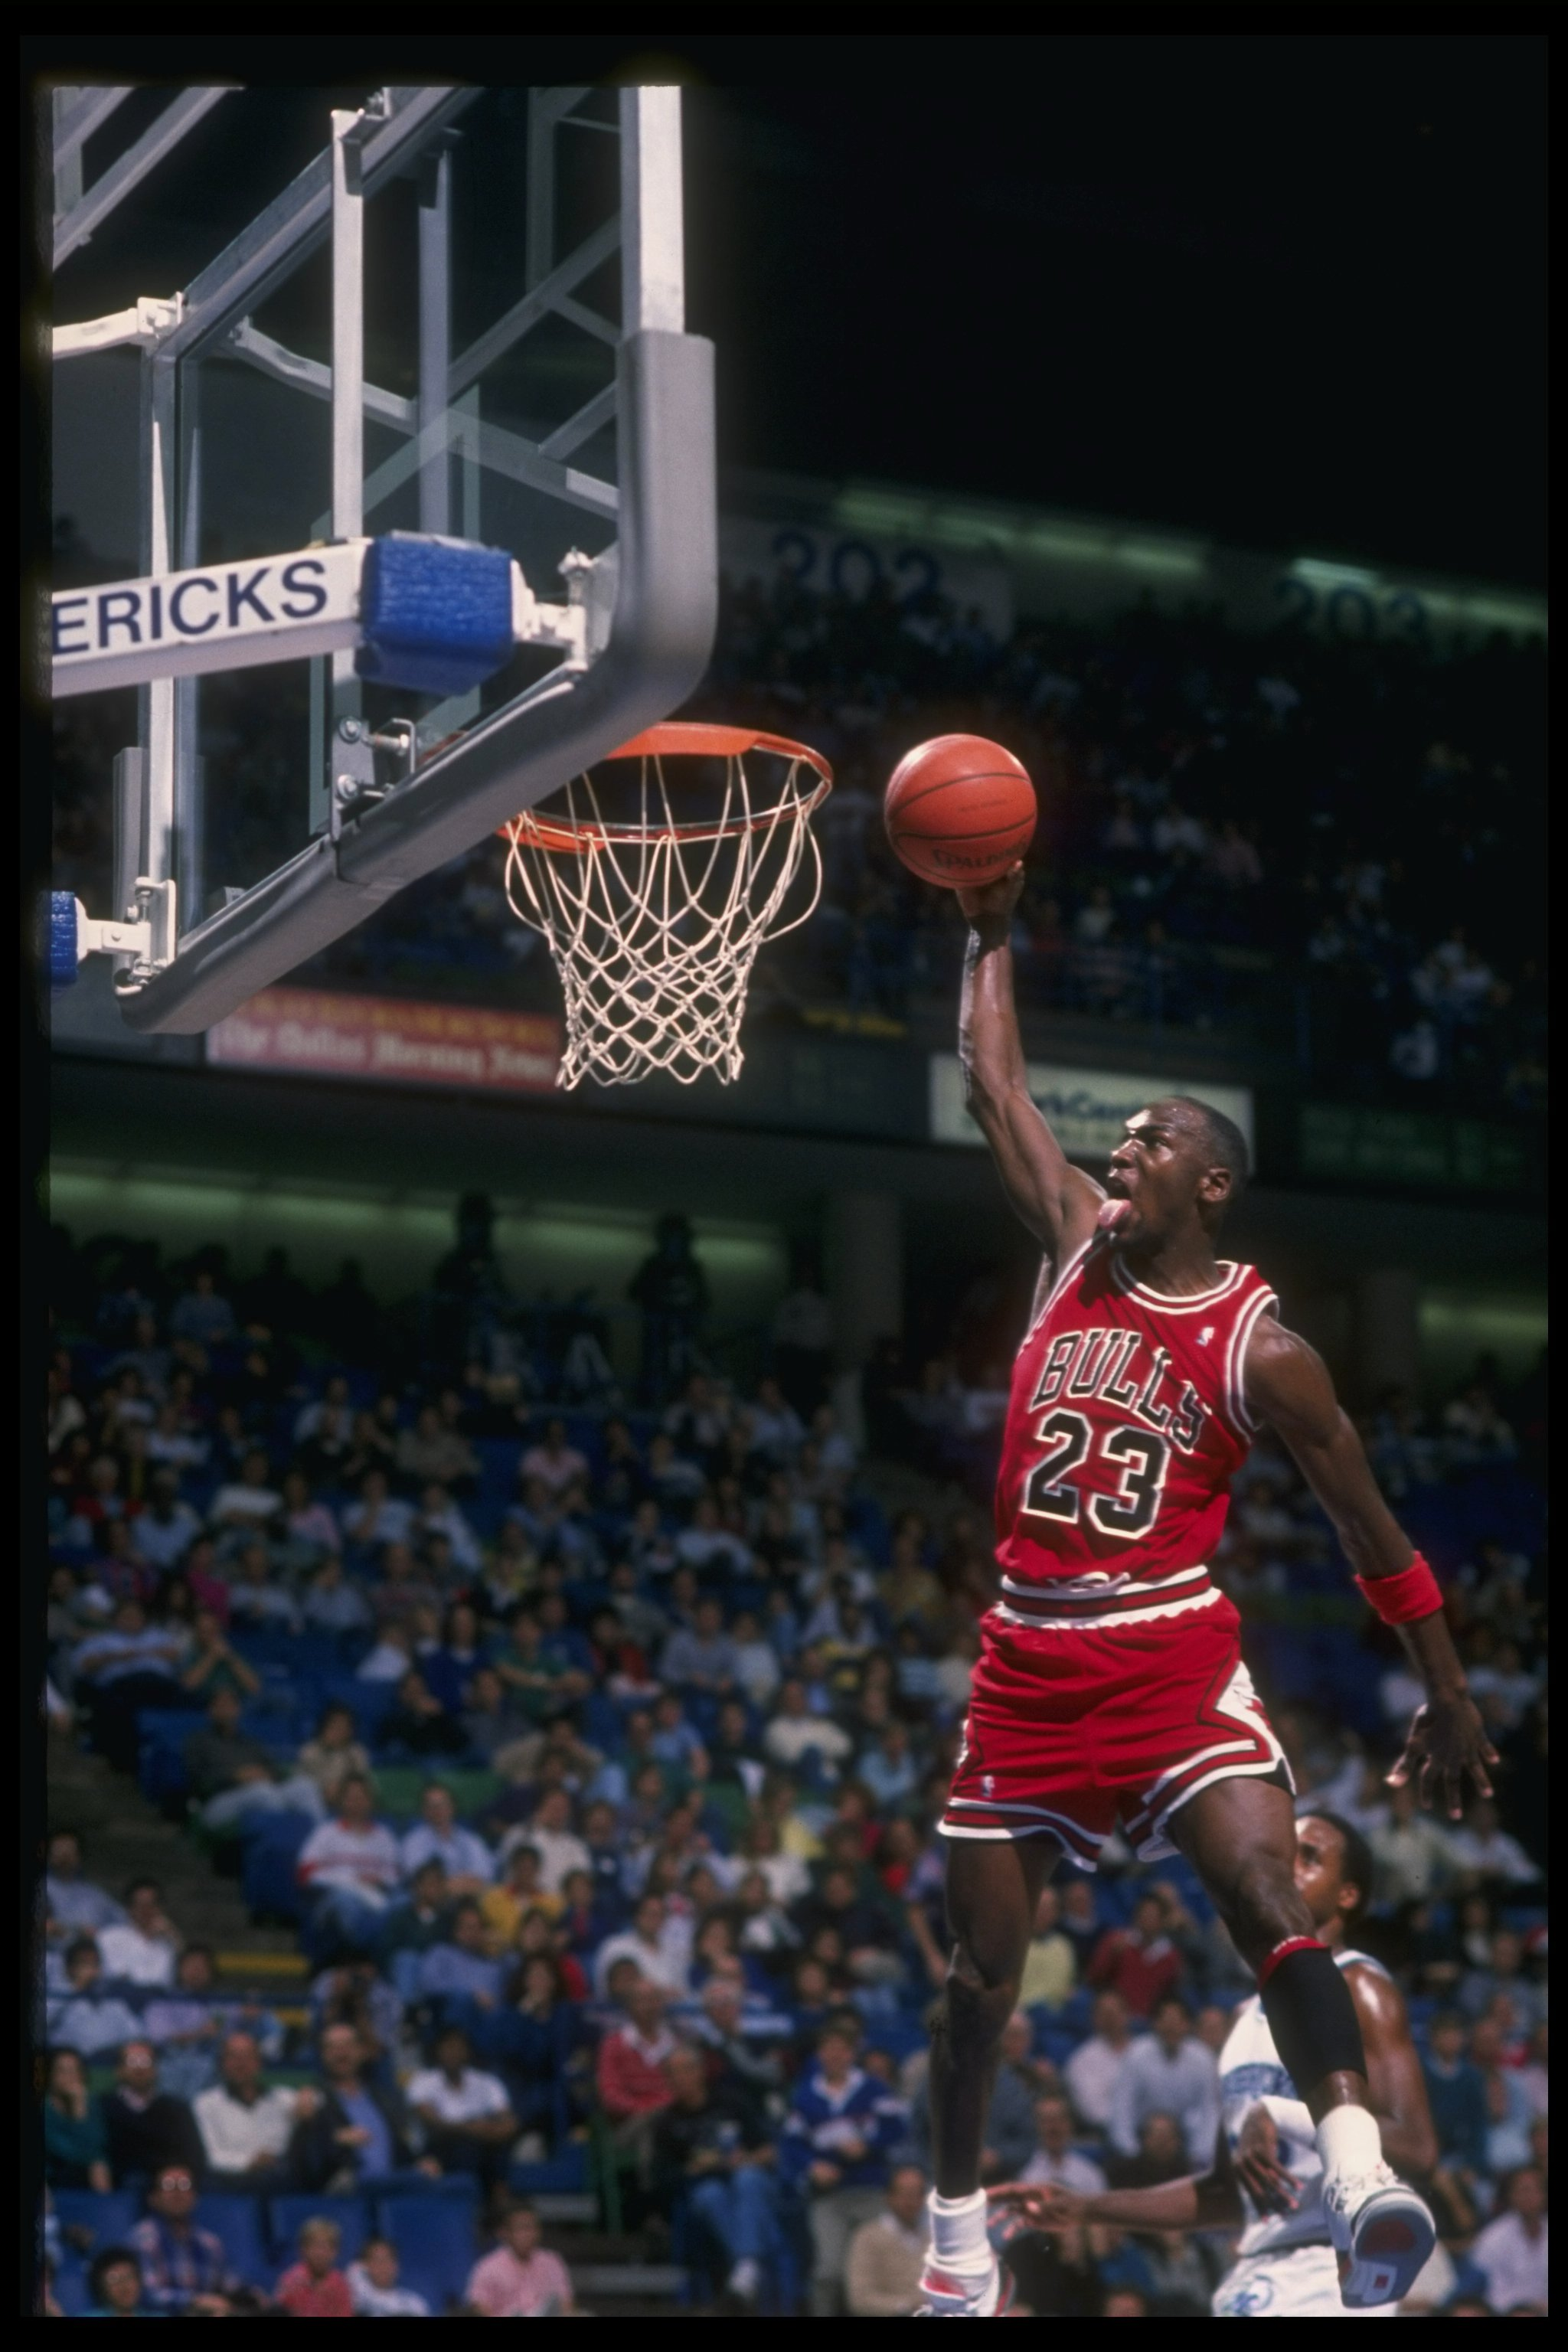 Tennis Players Hd Wallpapers From Larry Bird To Magic Johnson Michael Jordan And